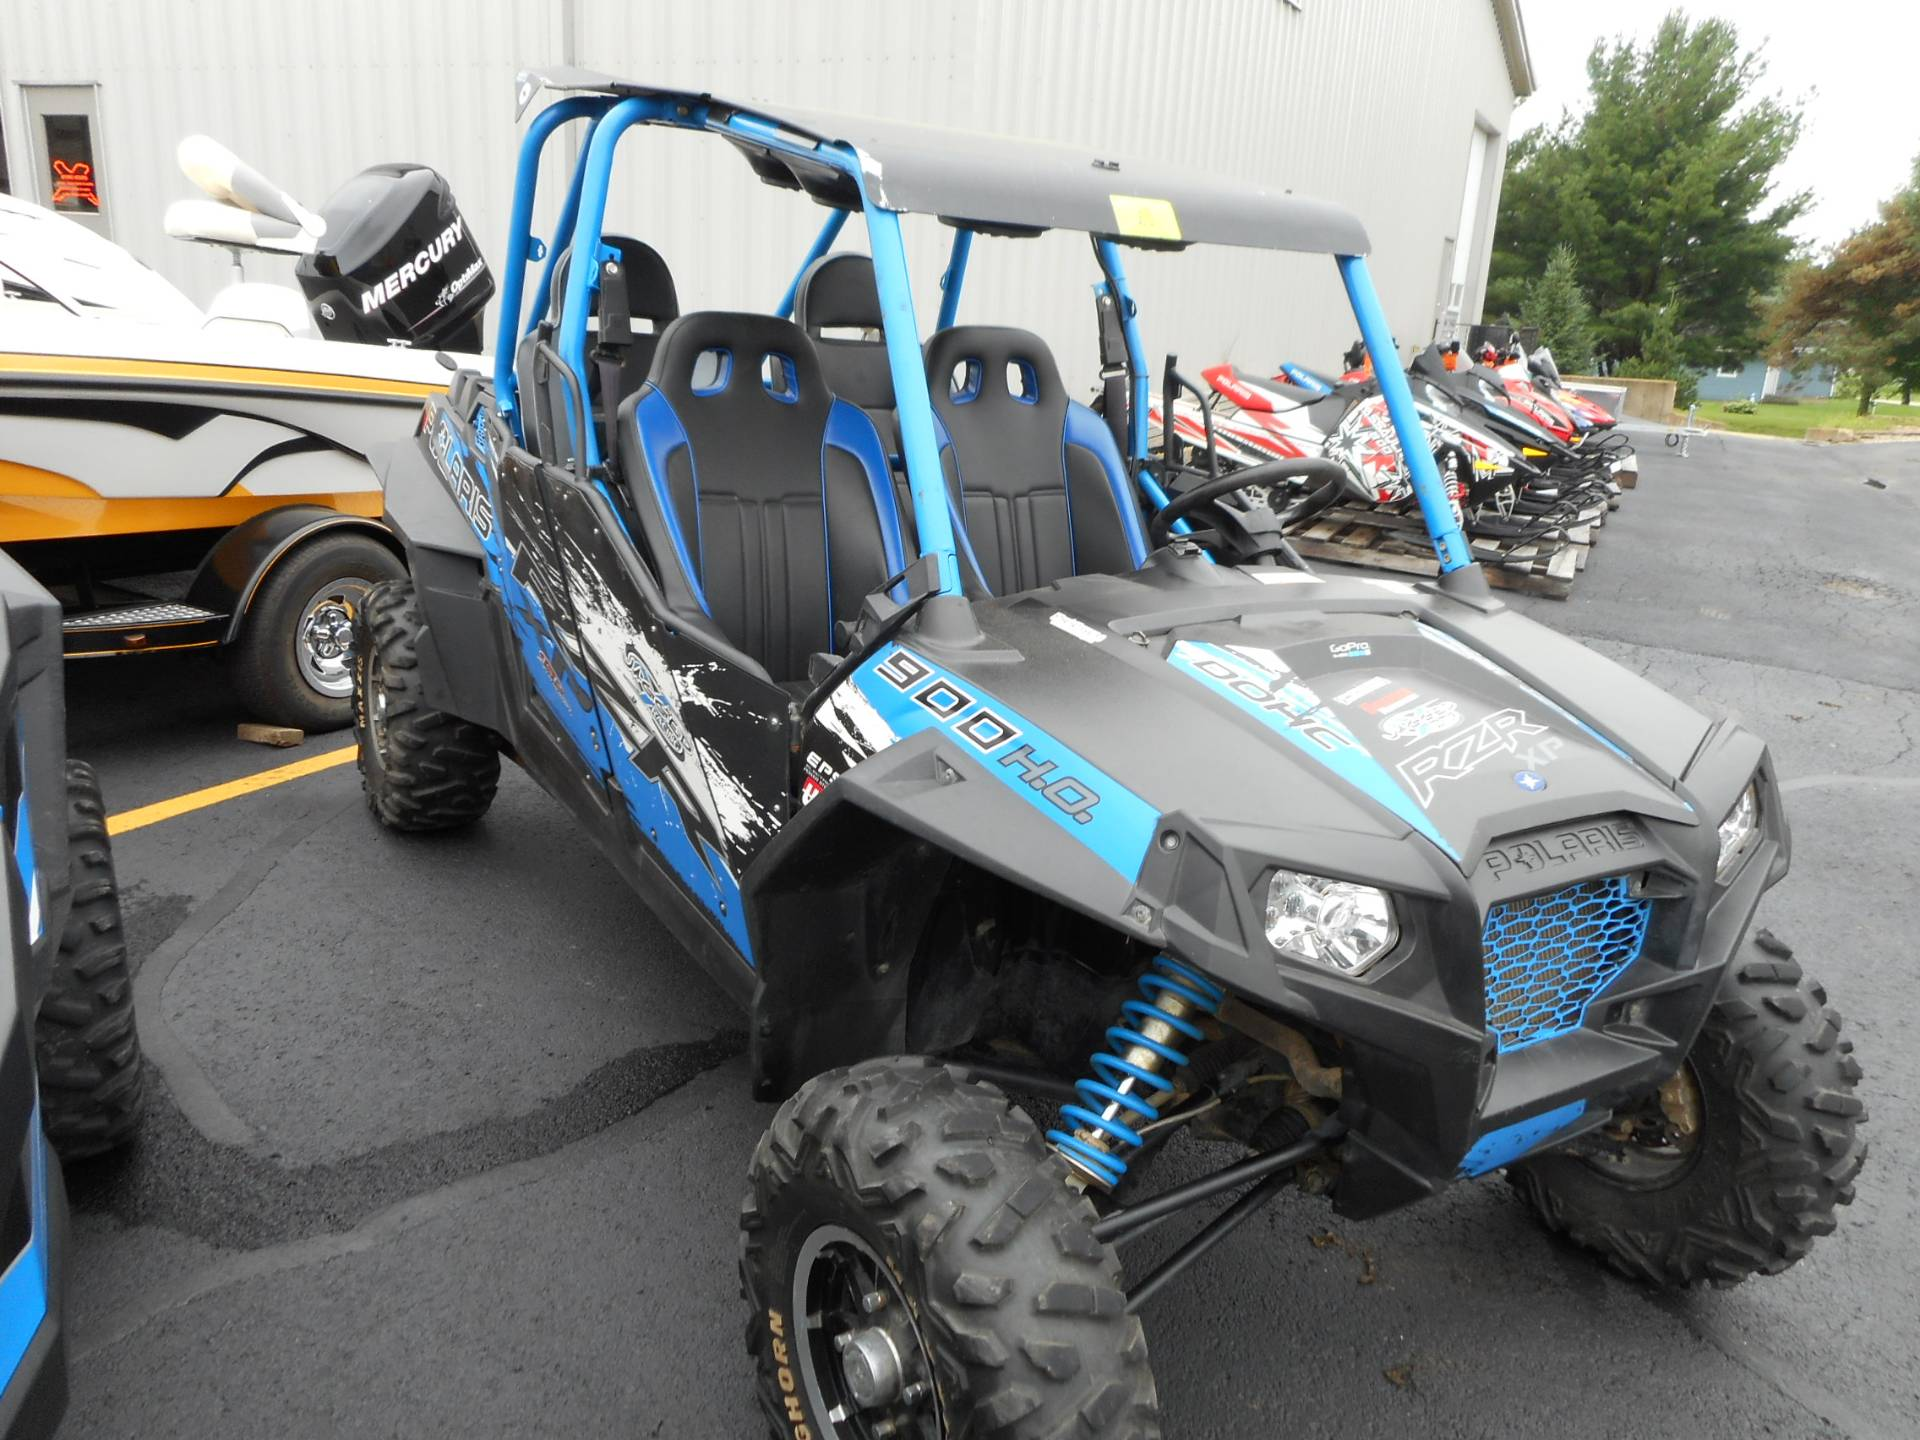 2013 Polaris RZR XP 900 H.O. Jagged X Edition 2